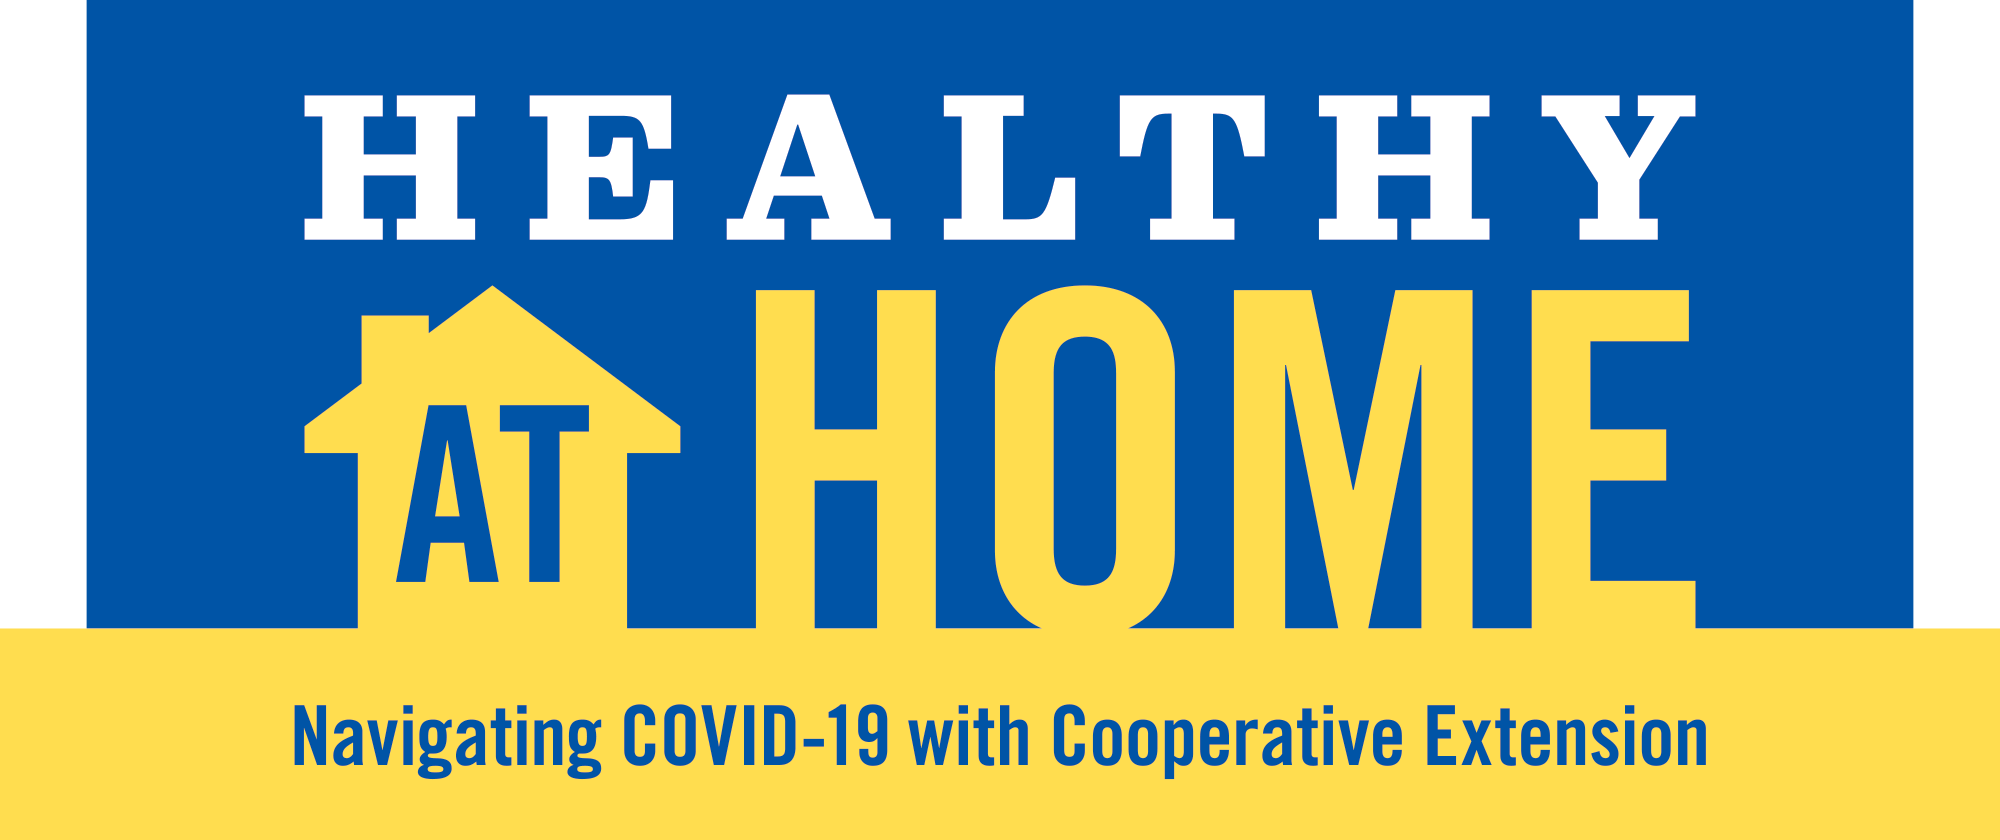 Healthy At Home Lead Graphic with words: Healthy at Home: Navigating COVID-19 With Cooperative Extension